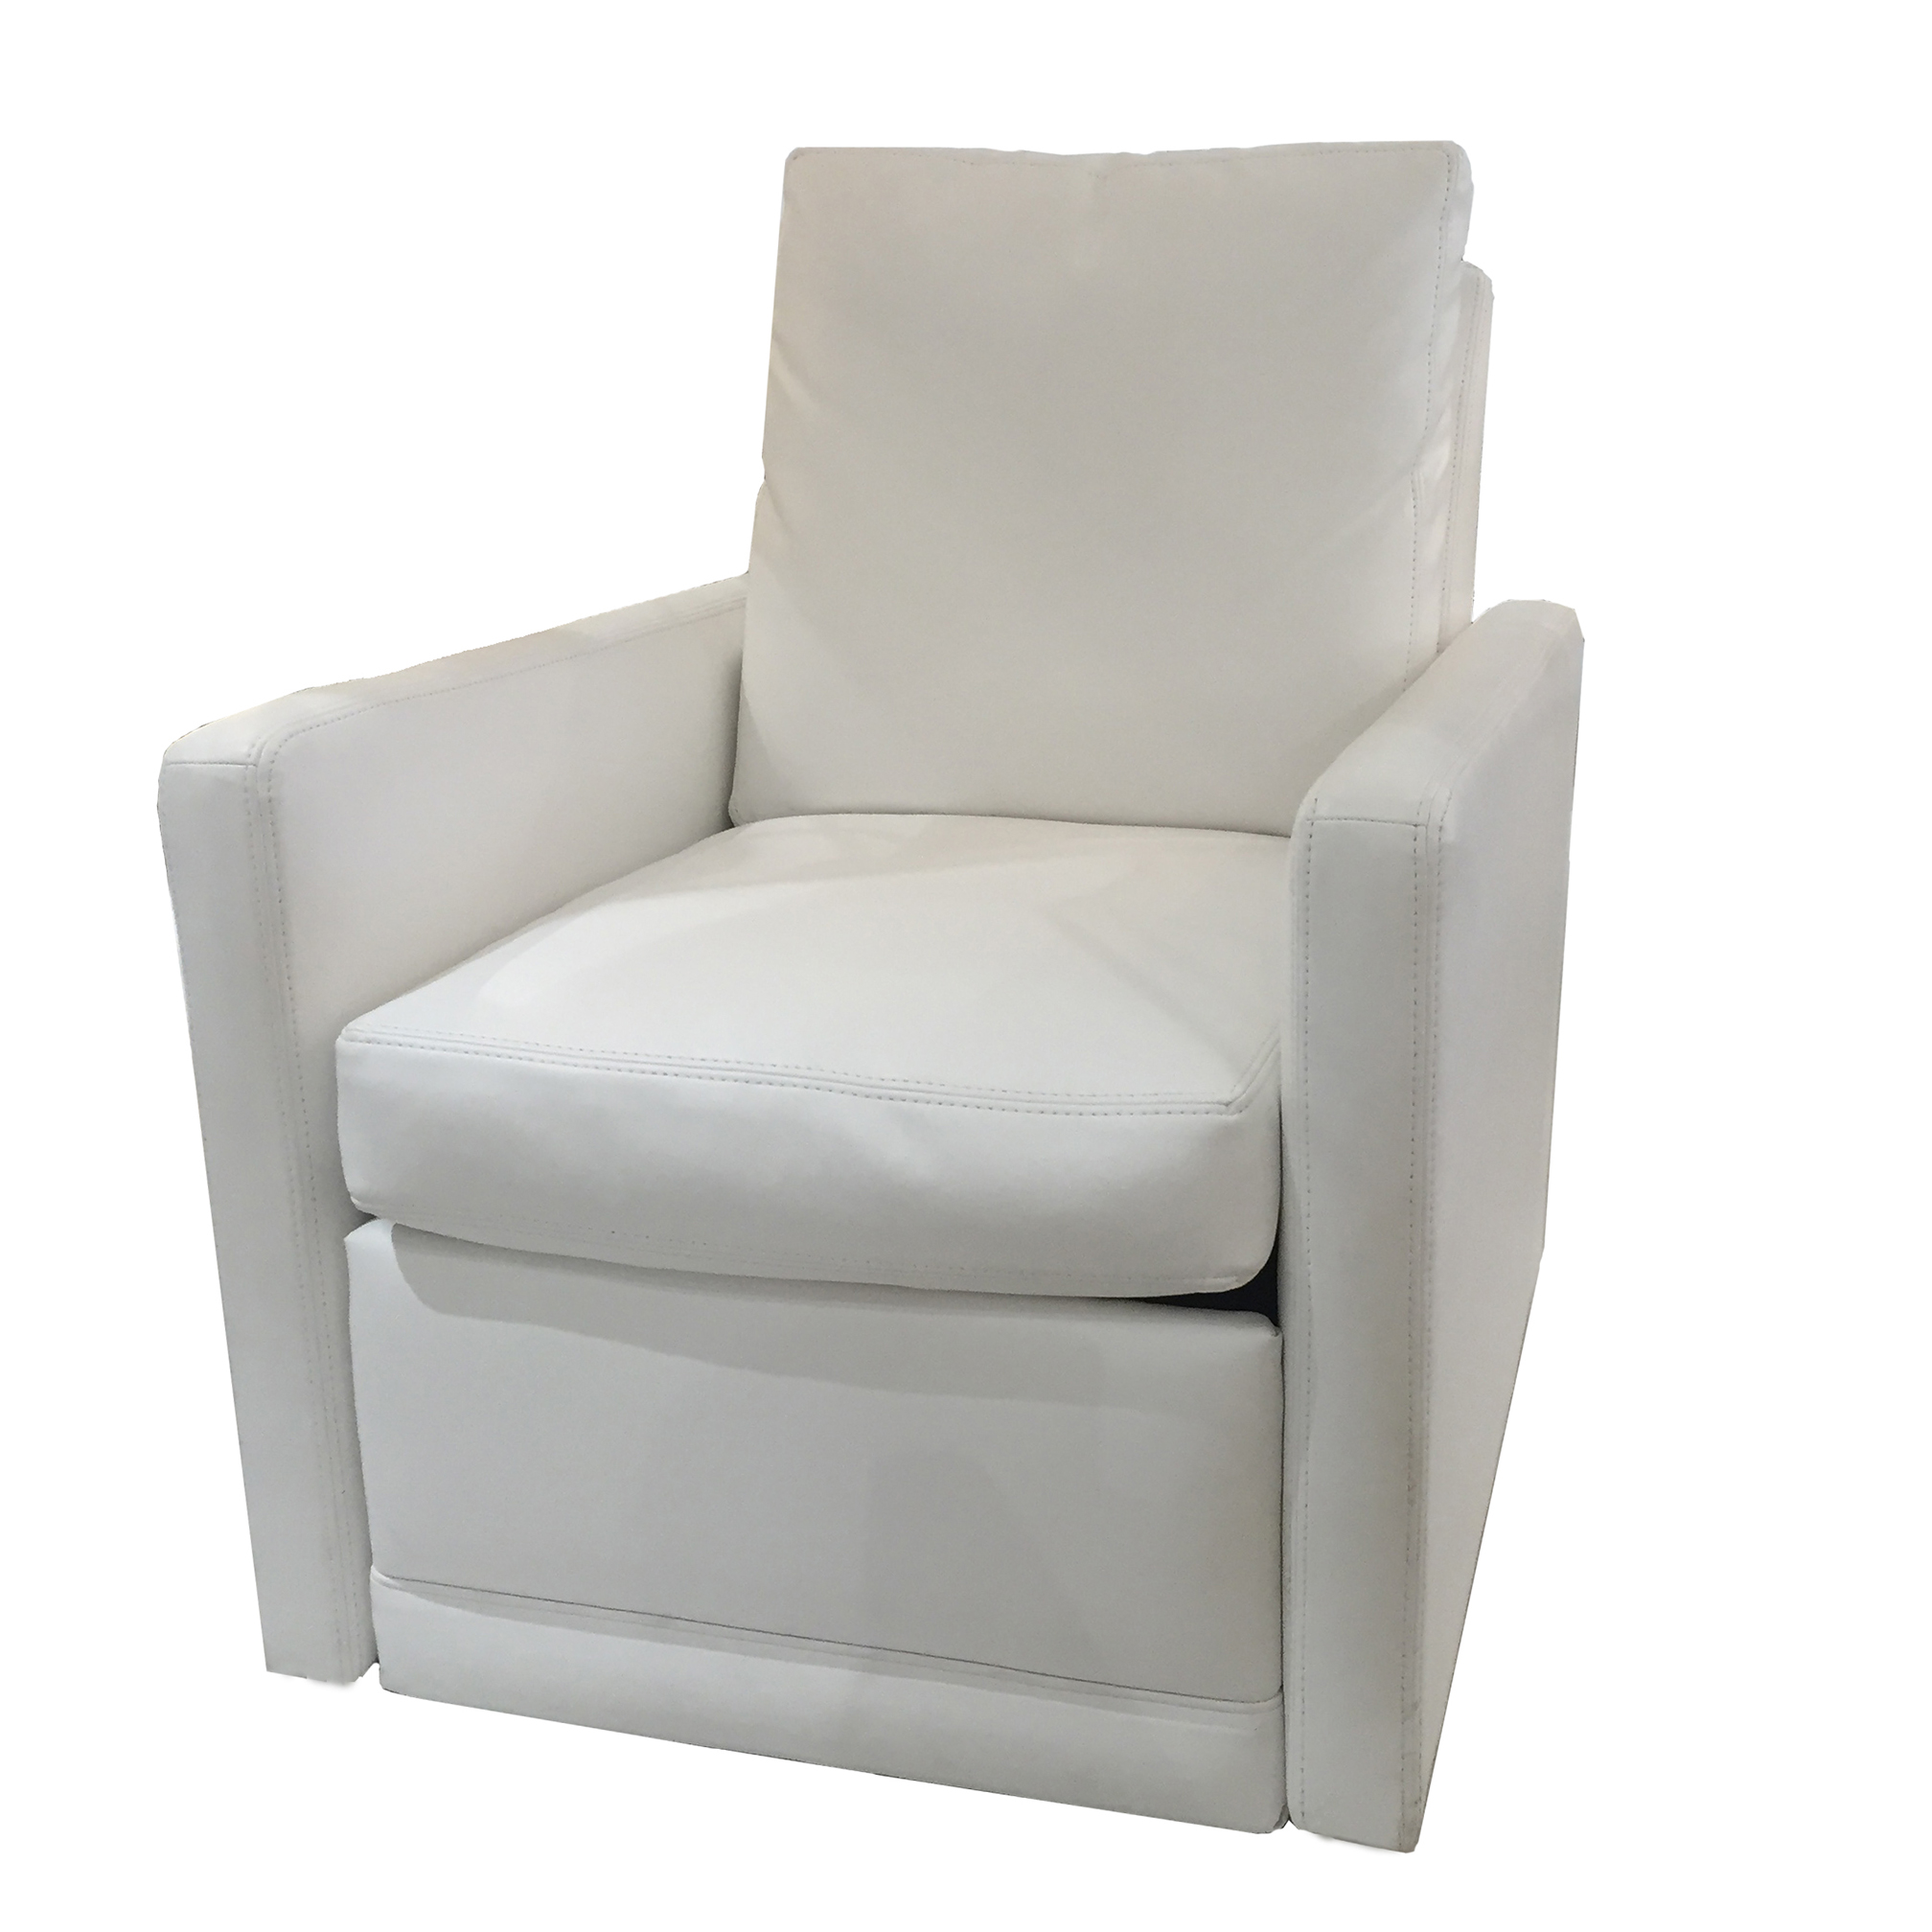 Relaxor_Swivel_Recliner_L1229-01RS_Lee.jpg